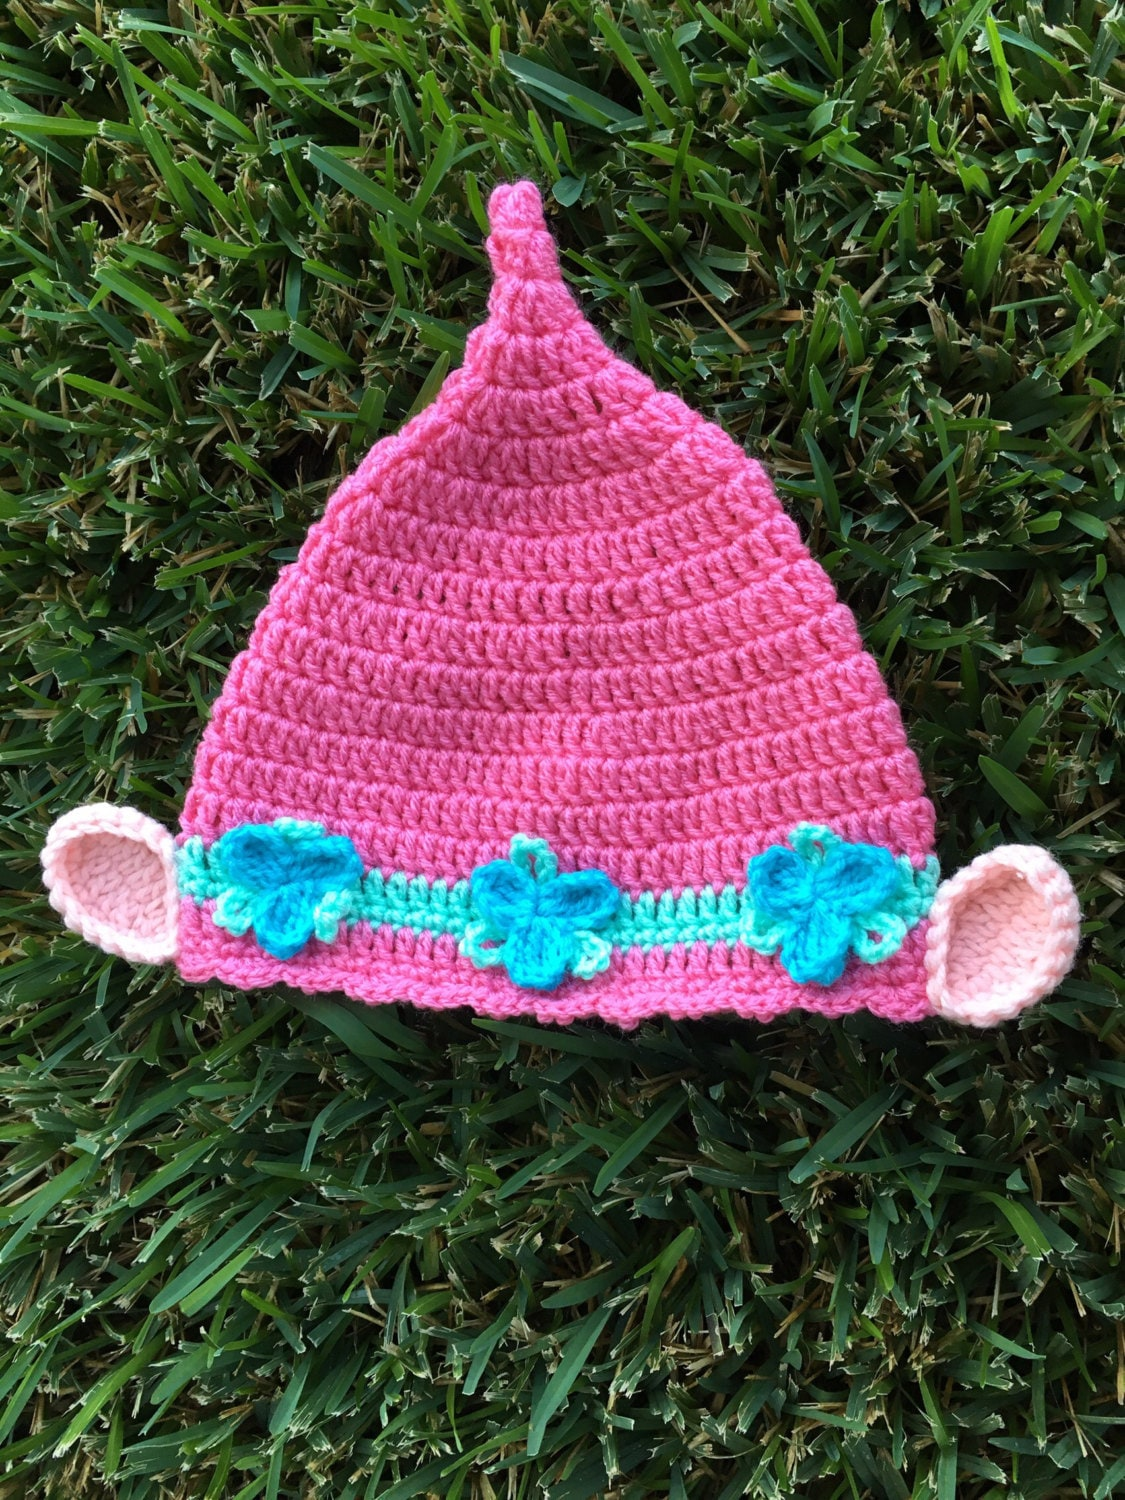 Crochet Pattern For Troll Hat : Poppy pink troll adorable hat